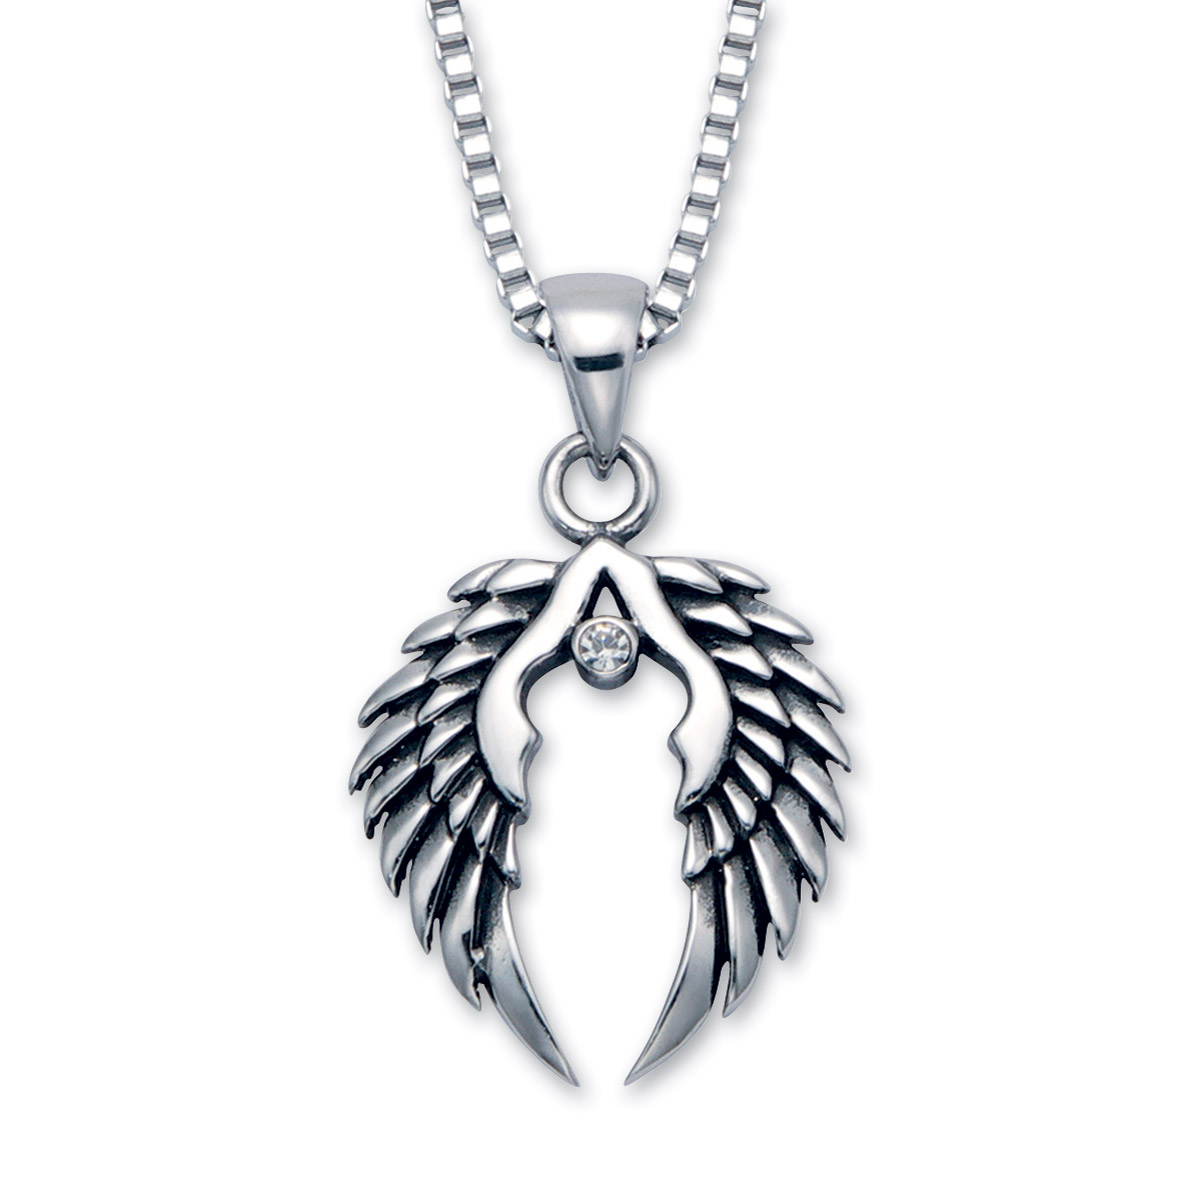 Wildthings Stainless Steel Necklace Wings with 20″ Chain